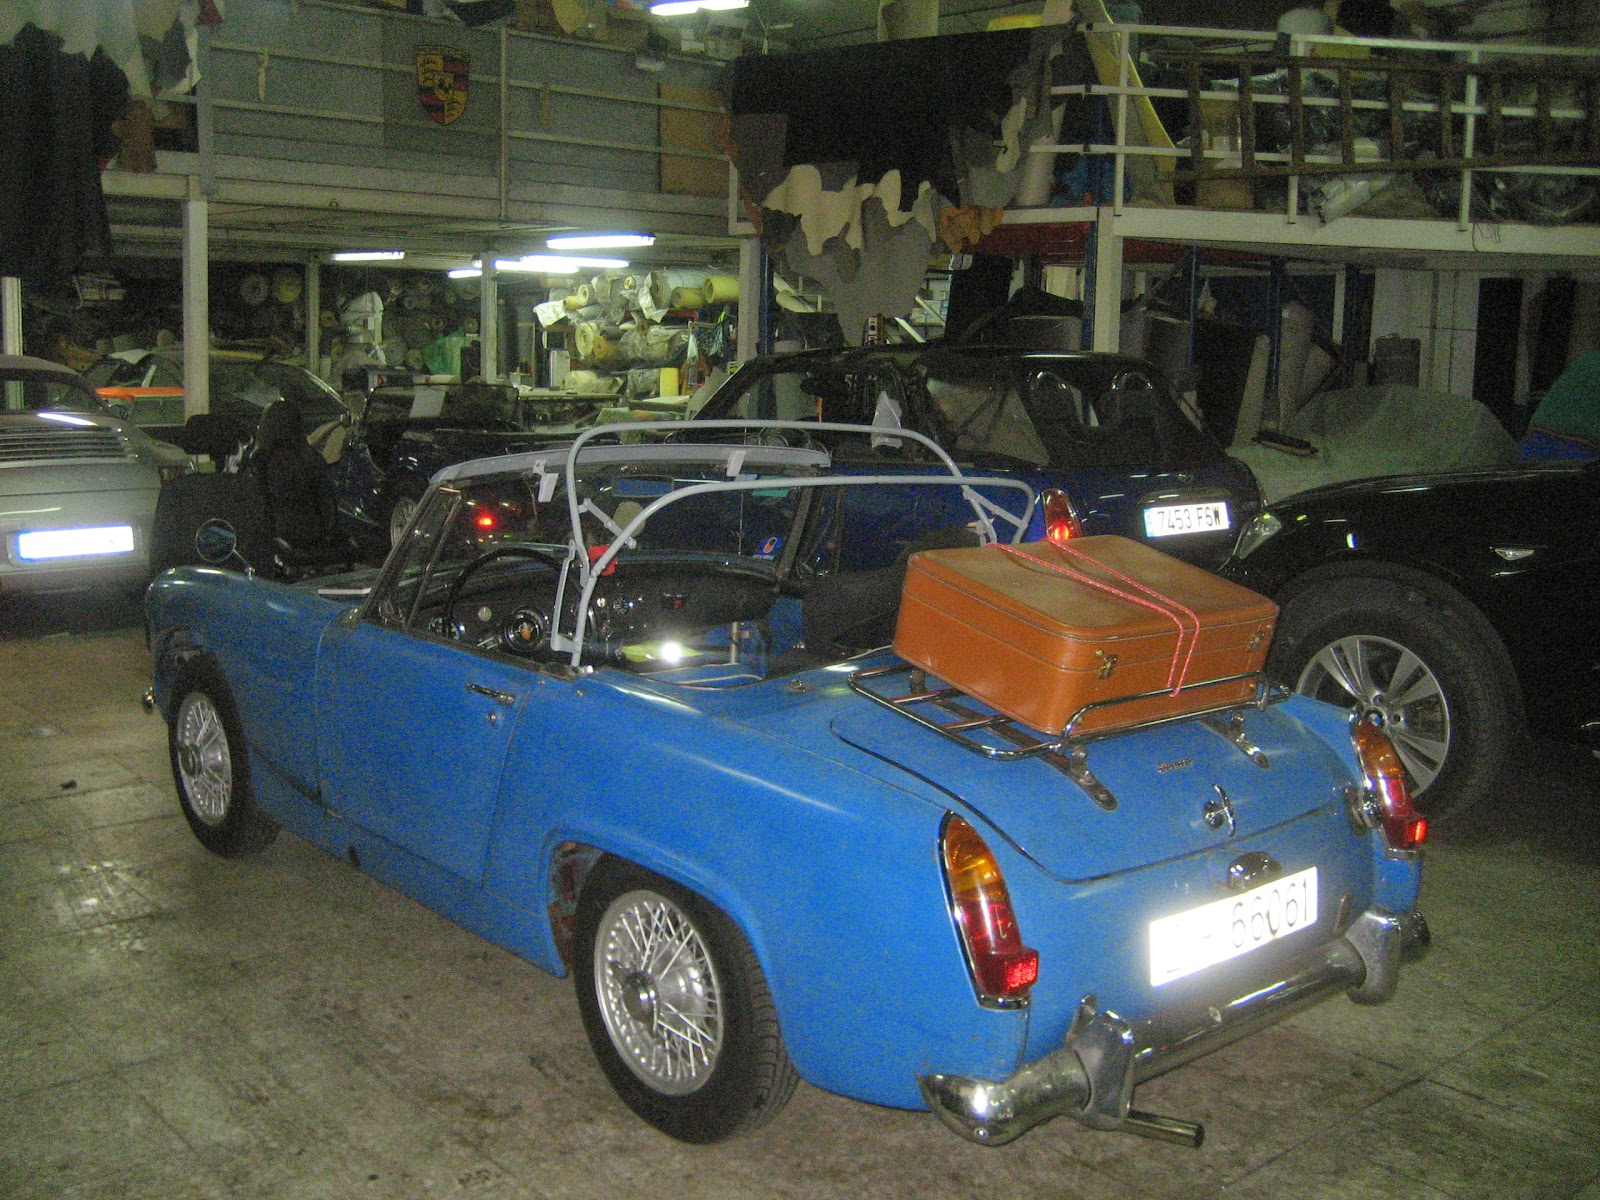 WTB \'64 Midget Top Frame and Parts [California, USA] : Buy, Sell ...